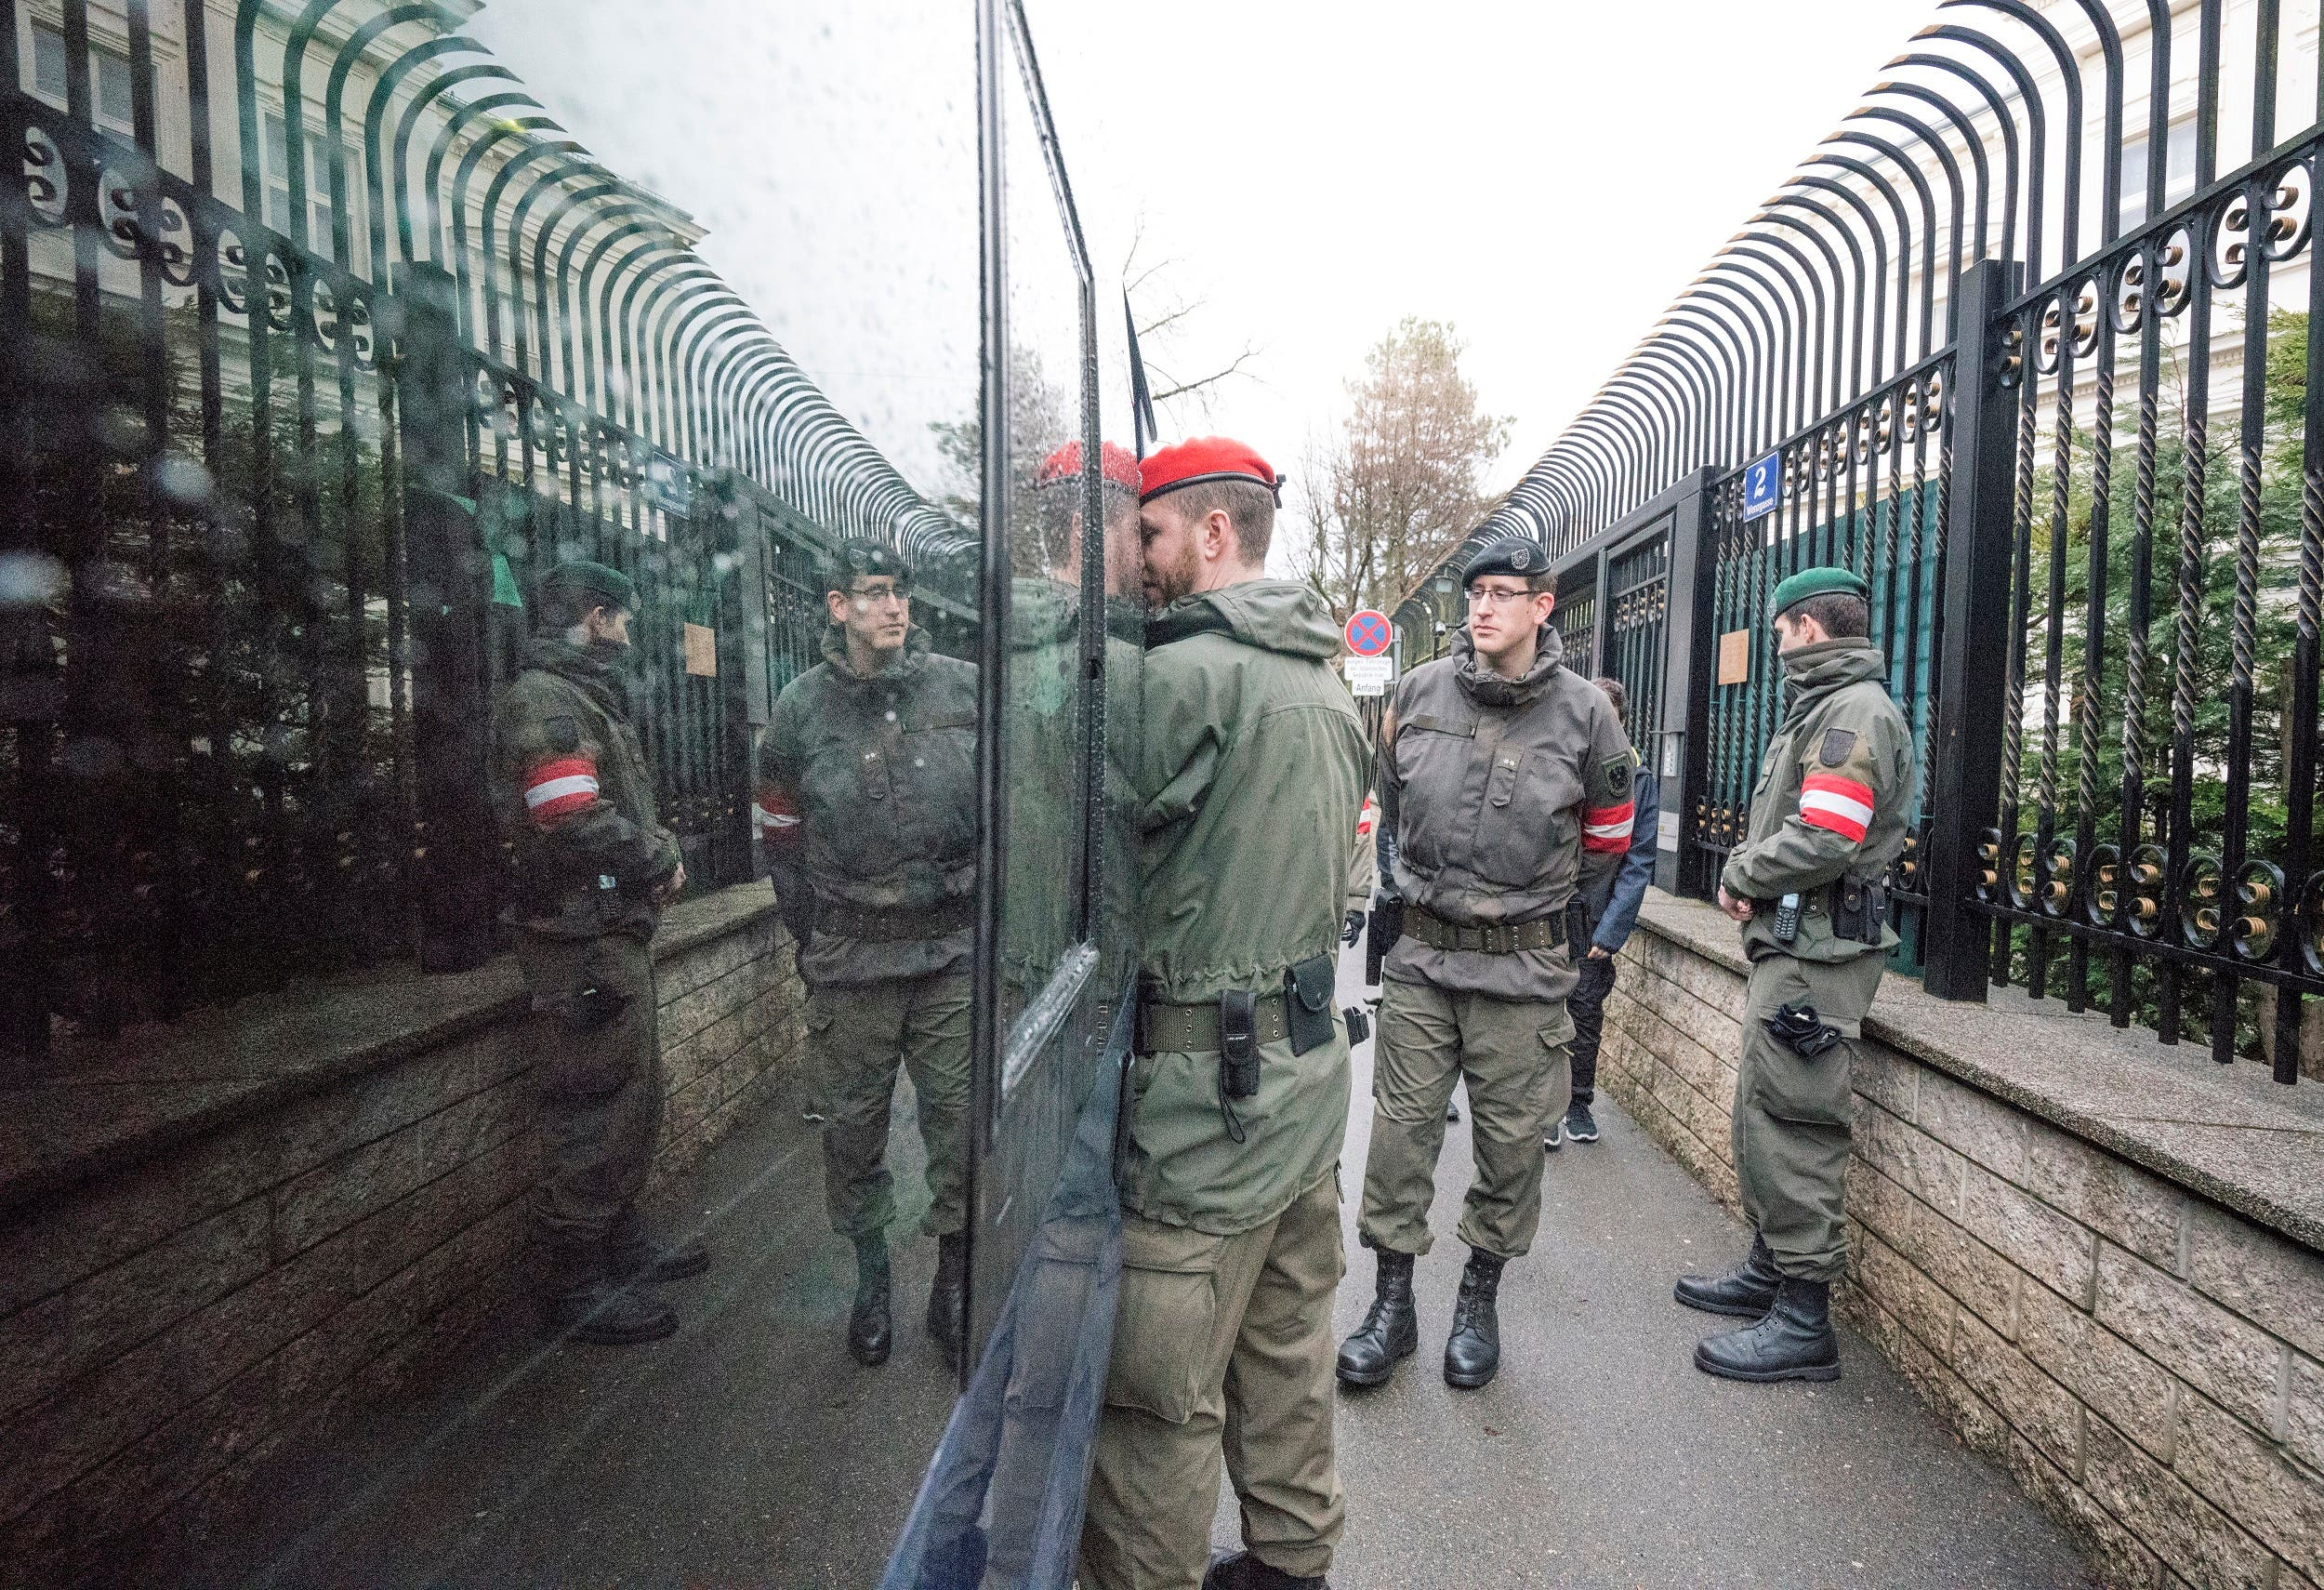 Austrian soldiers stand guard outside the Iran ambassador's residence in Vienna, on March 12, 2018. (AFP)